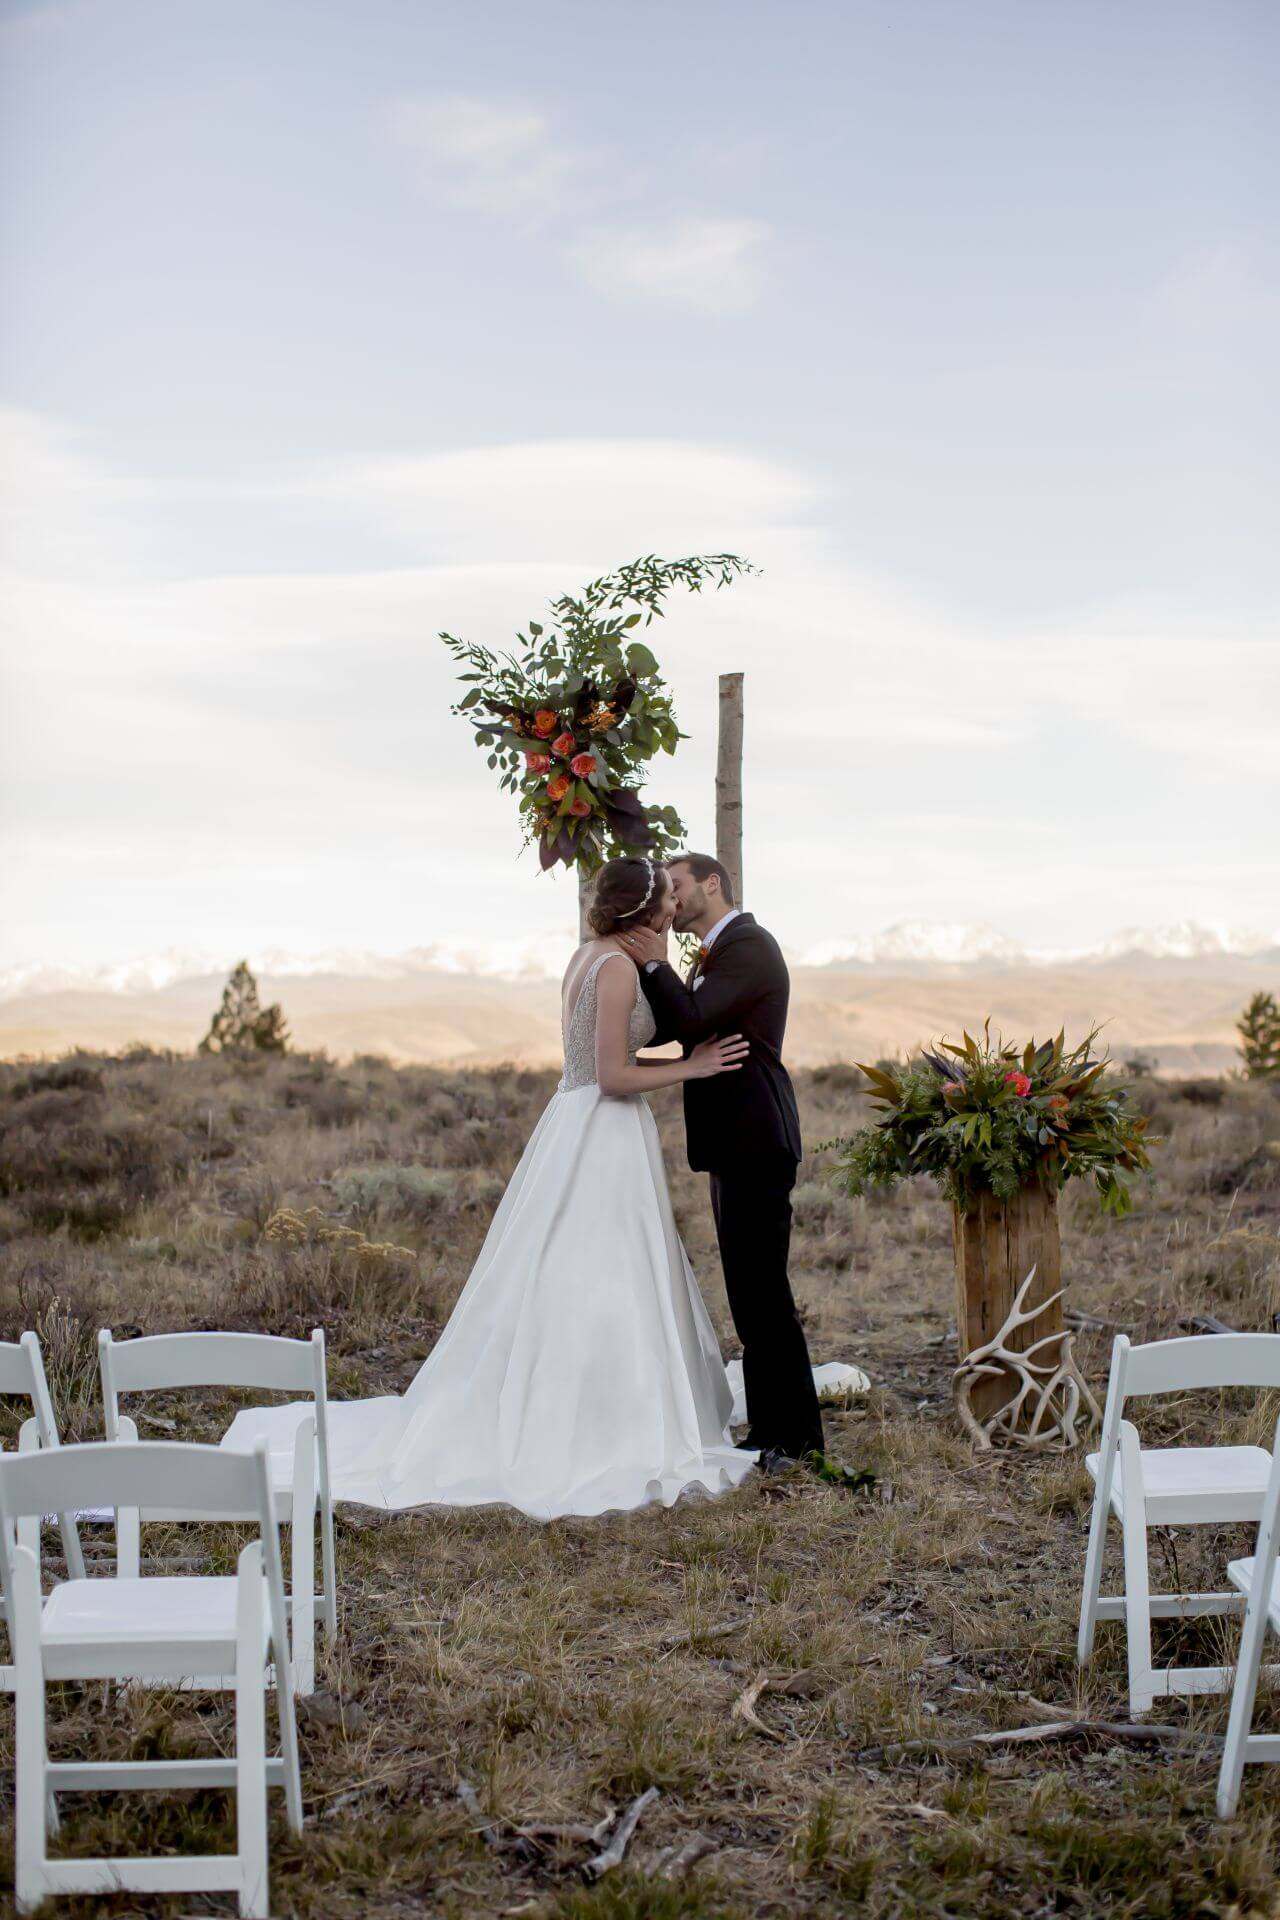 kmulhern_photography_&_afrosted_affair_styled_wedding_shoot_OCT_2017_395.jpg